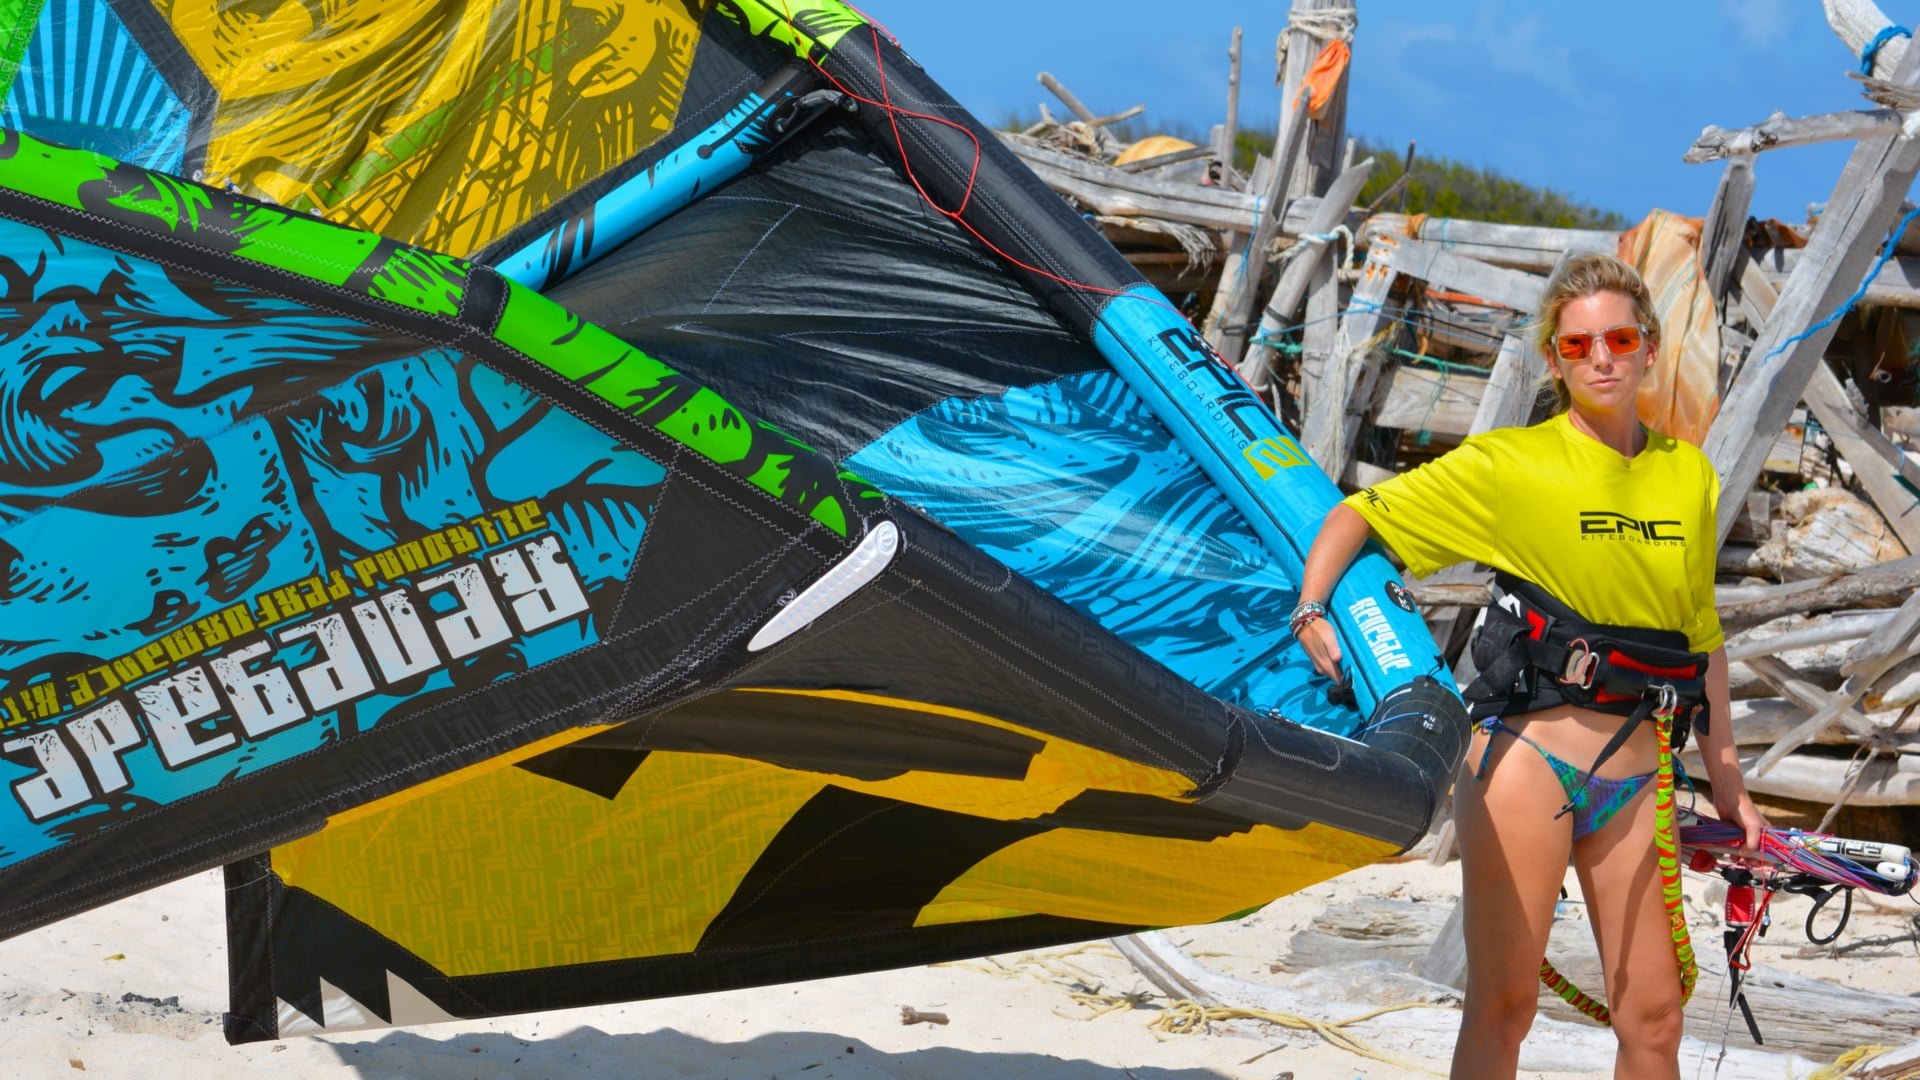 The best weapon for Kiteboarding - with Epic Kites Kiteboarding